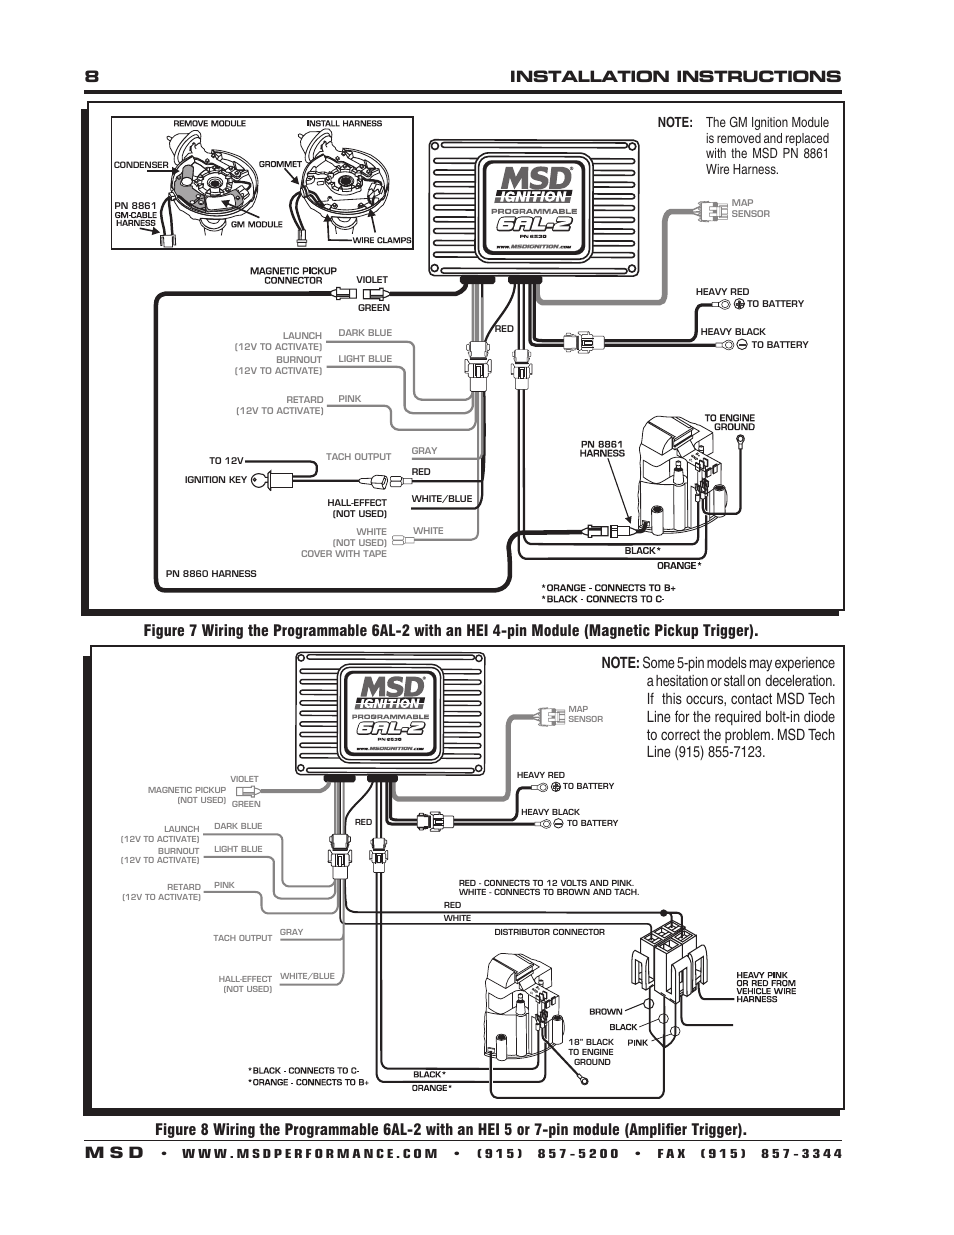 msd 8920 wiring diagram